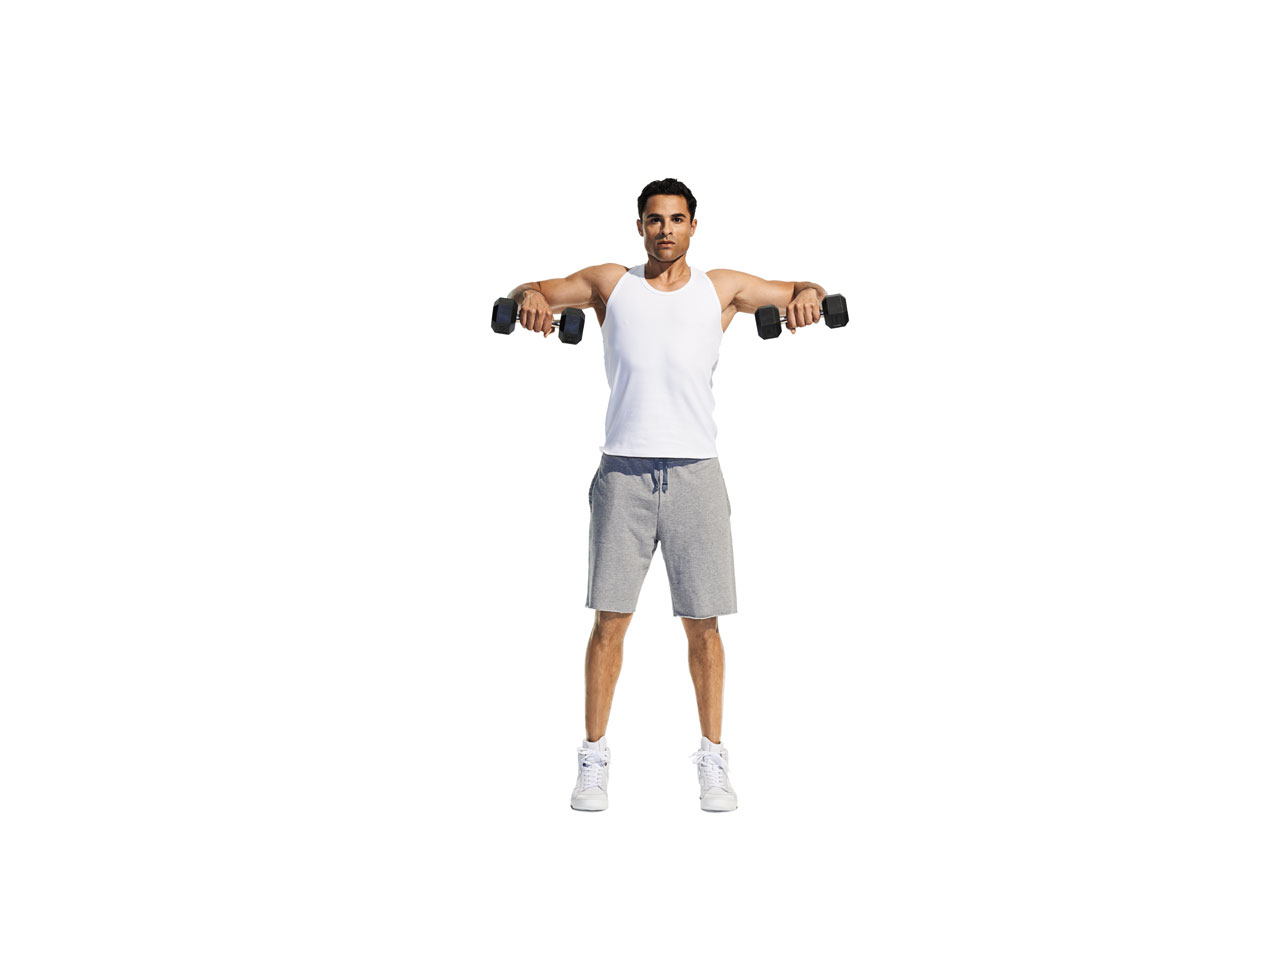 Complex exercises for arms and shoulders 45